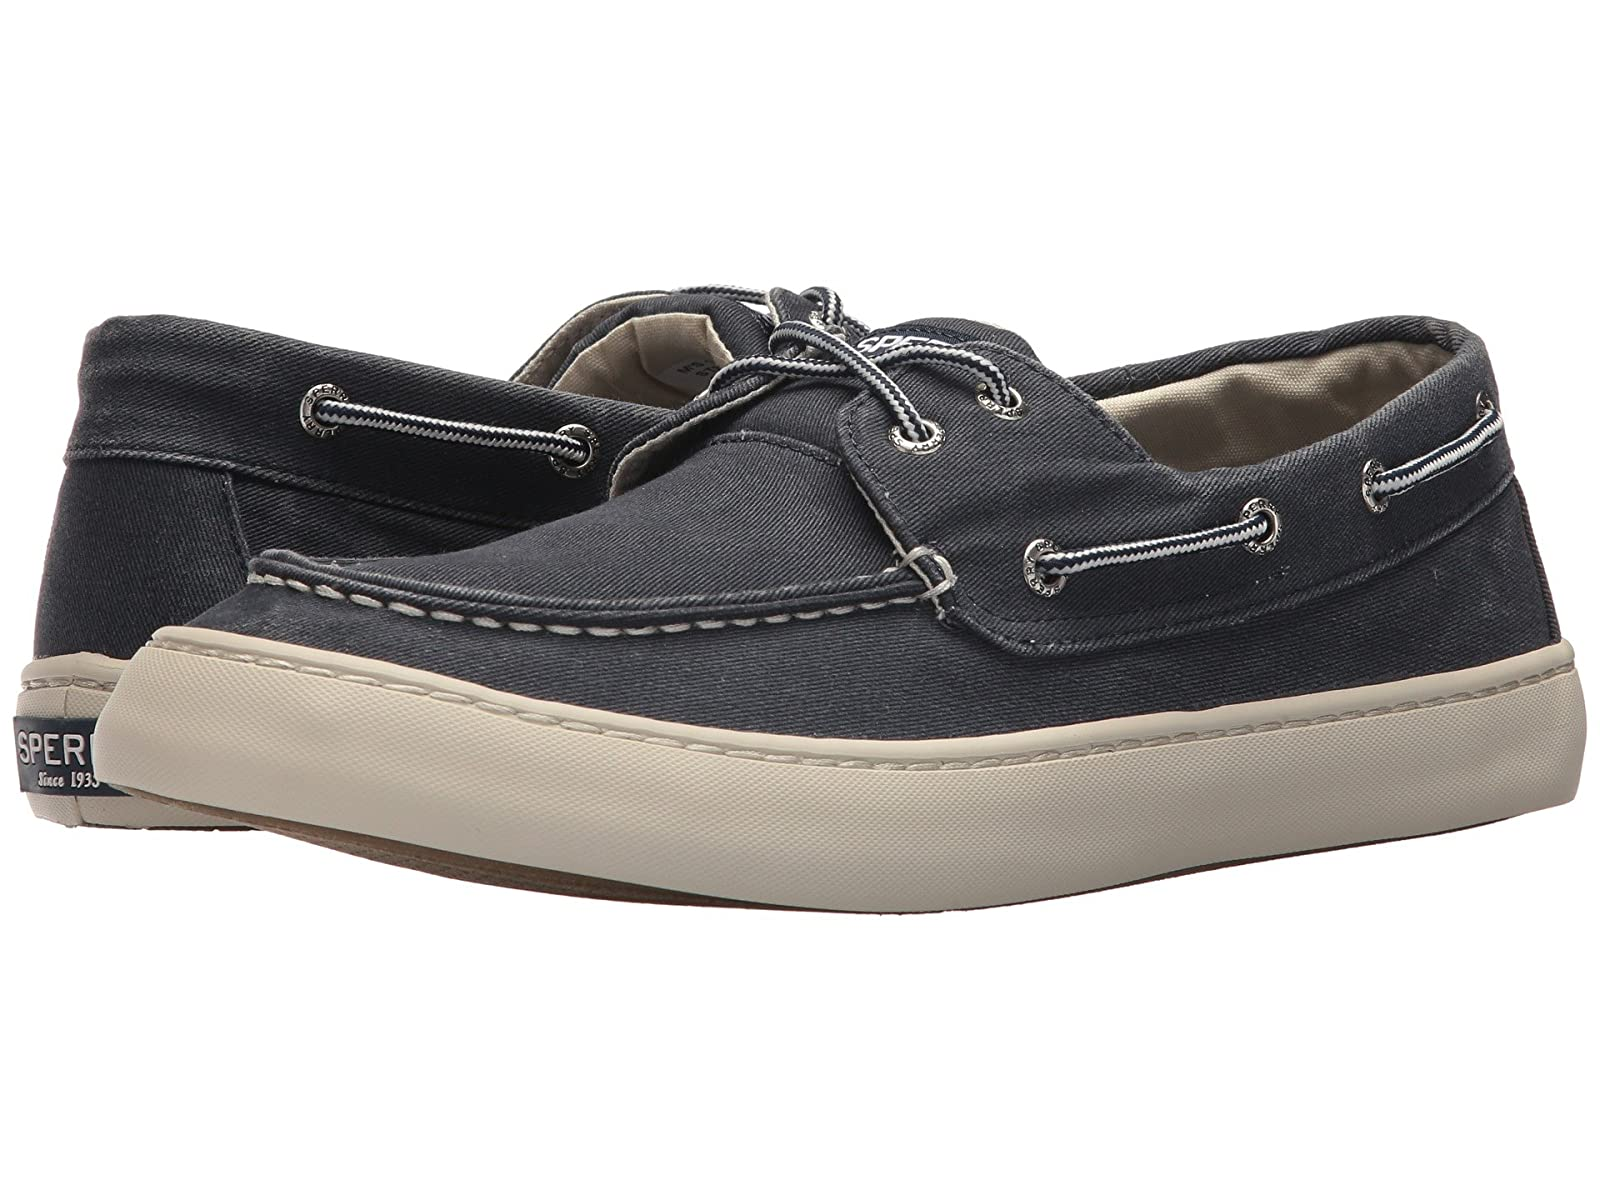 Sperry Cutter 2-EyeCheap and distinctive eye-catching shoes